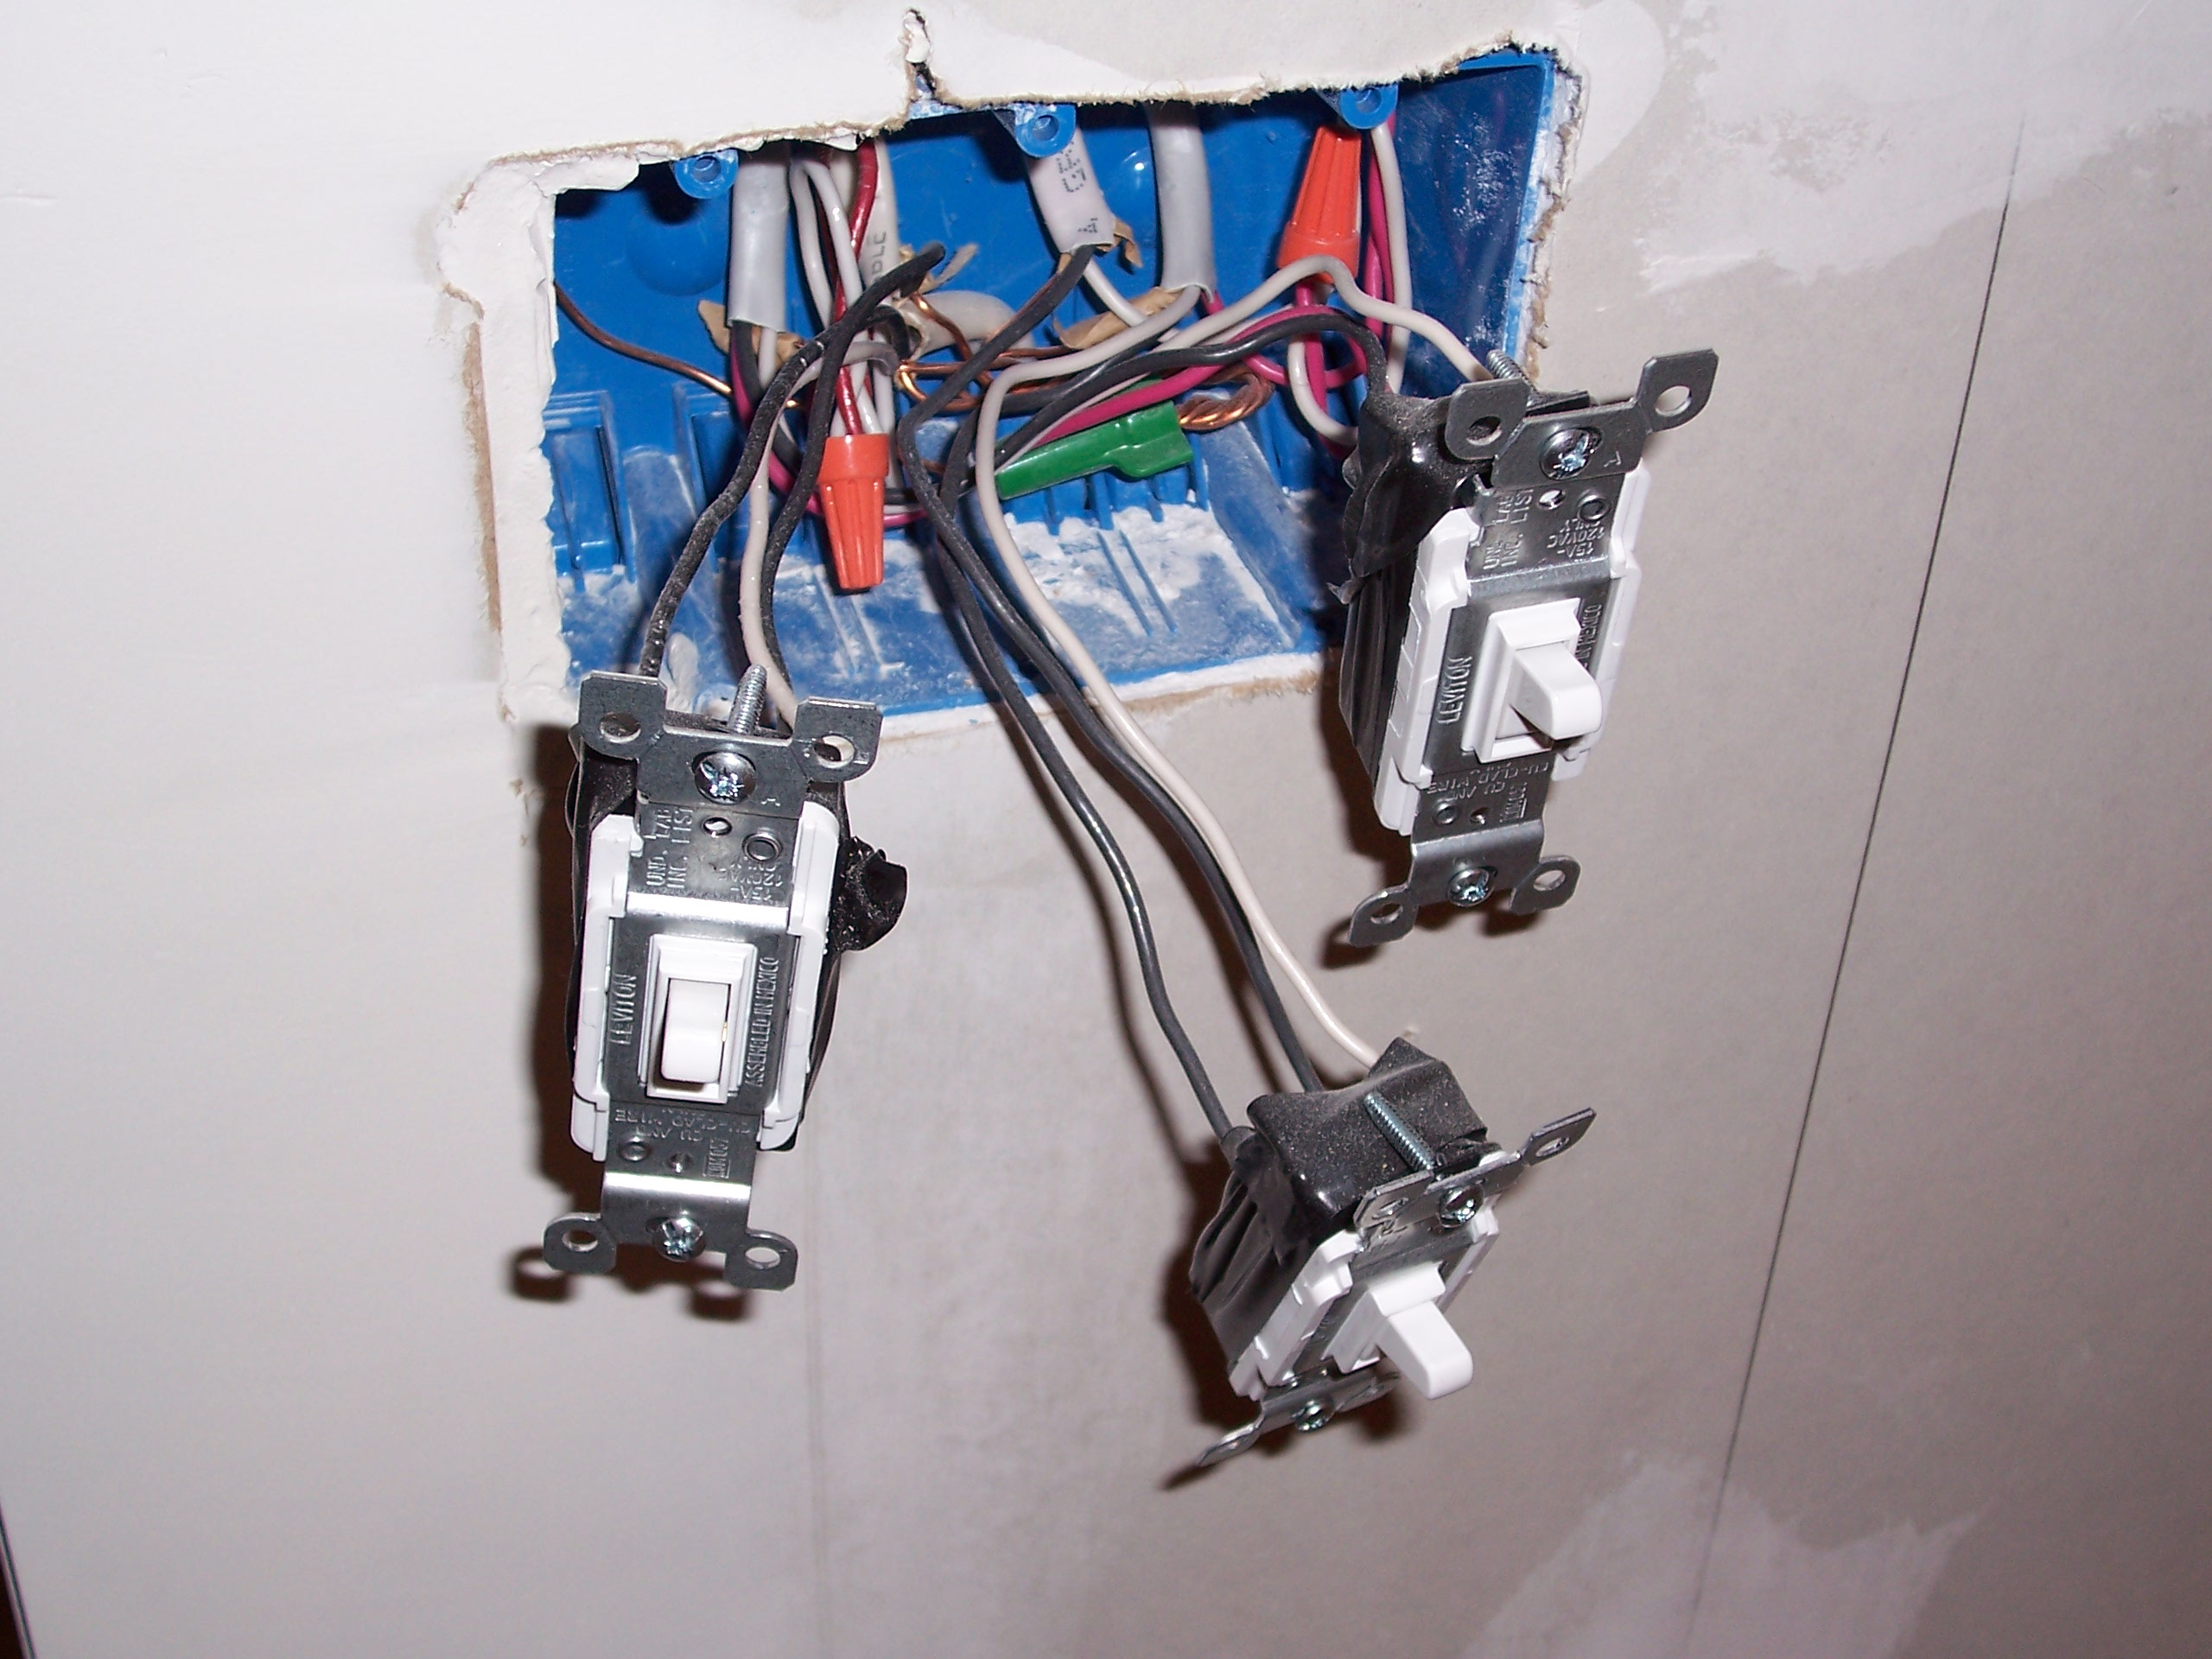 Electrical Switch Boxes Ivoiregion Installing Fan Gfci Into Existing Bathroom Wiringjpg Filethree Light Switches With Exposed Wiring